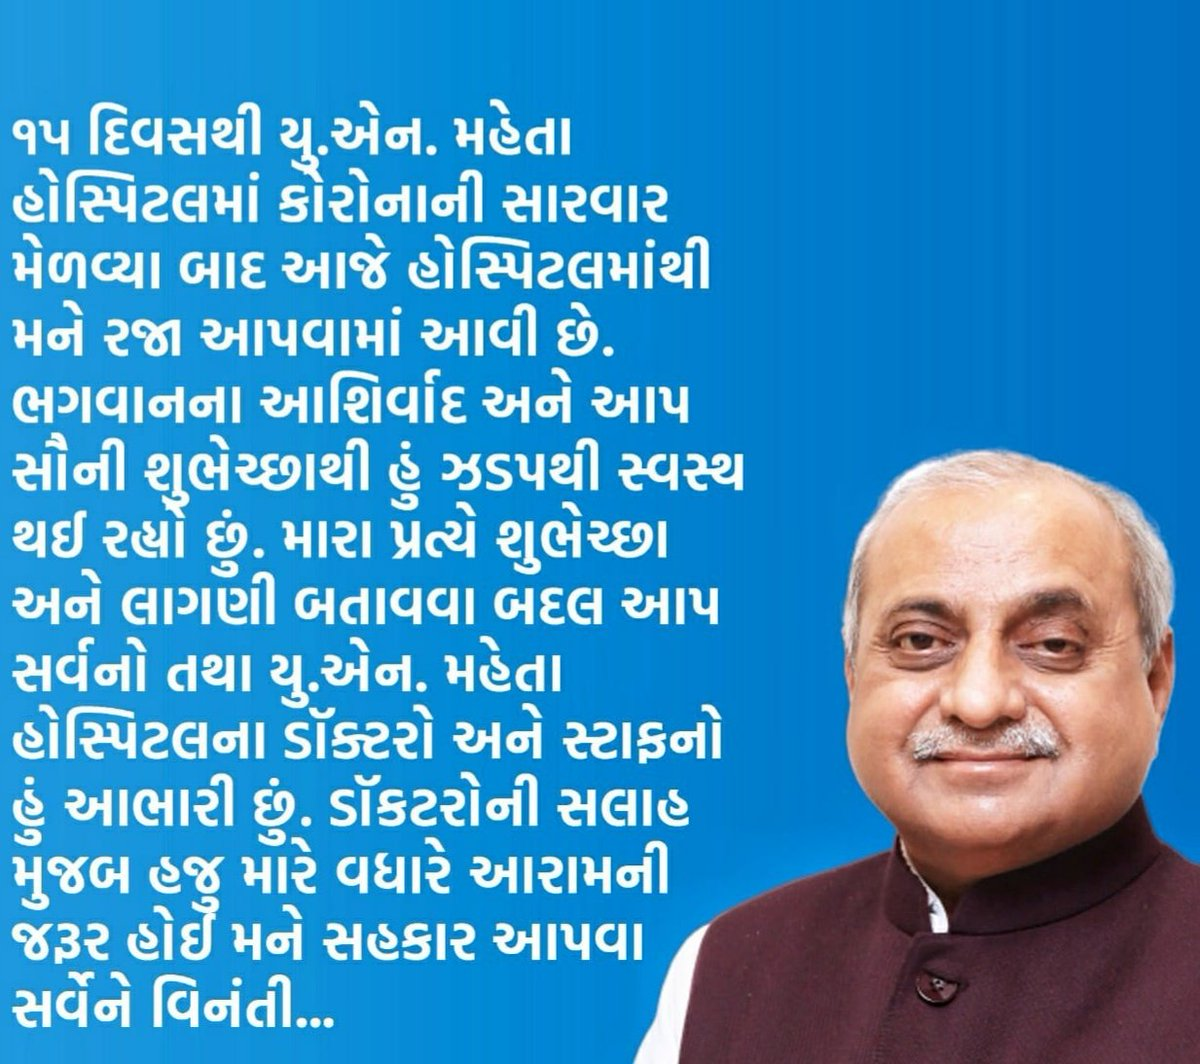 Dy CM Nitin Patel discharged after 15-day Covid hospitalization